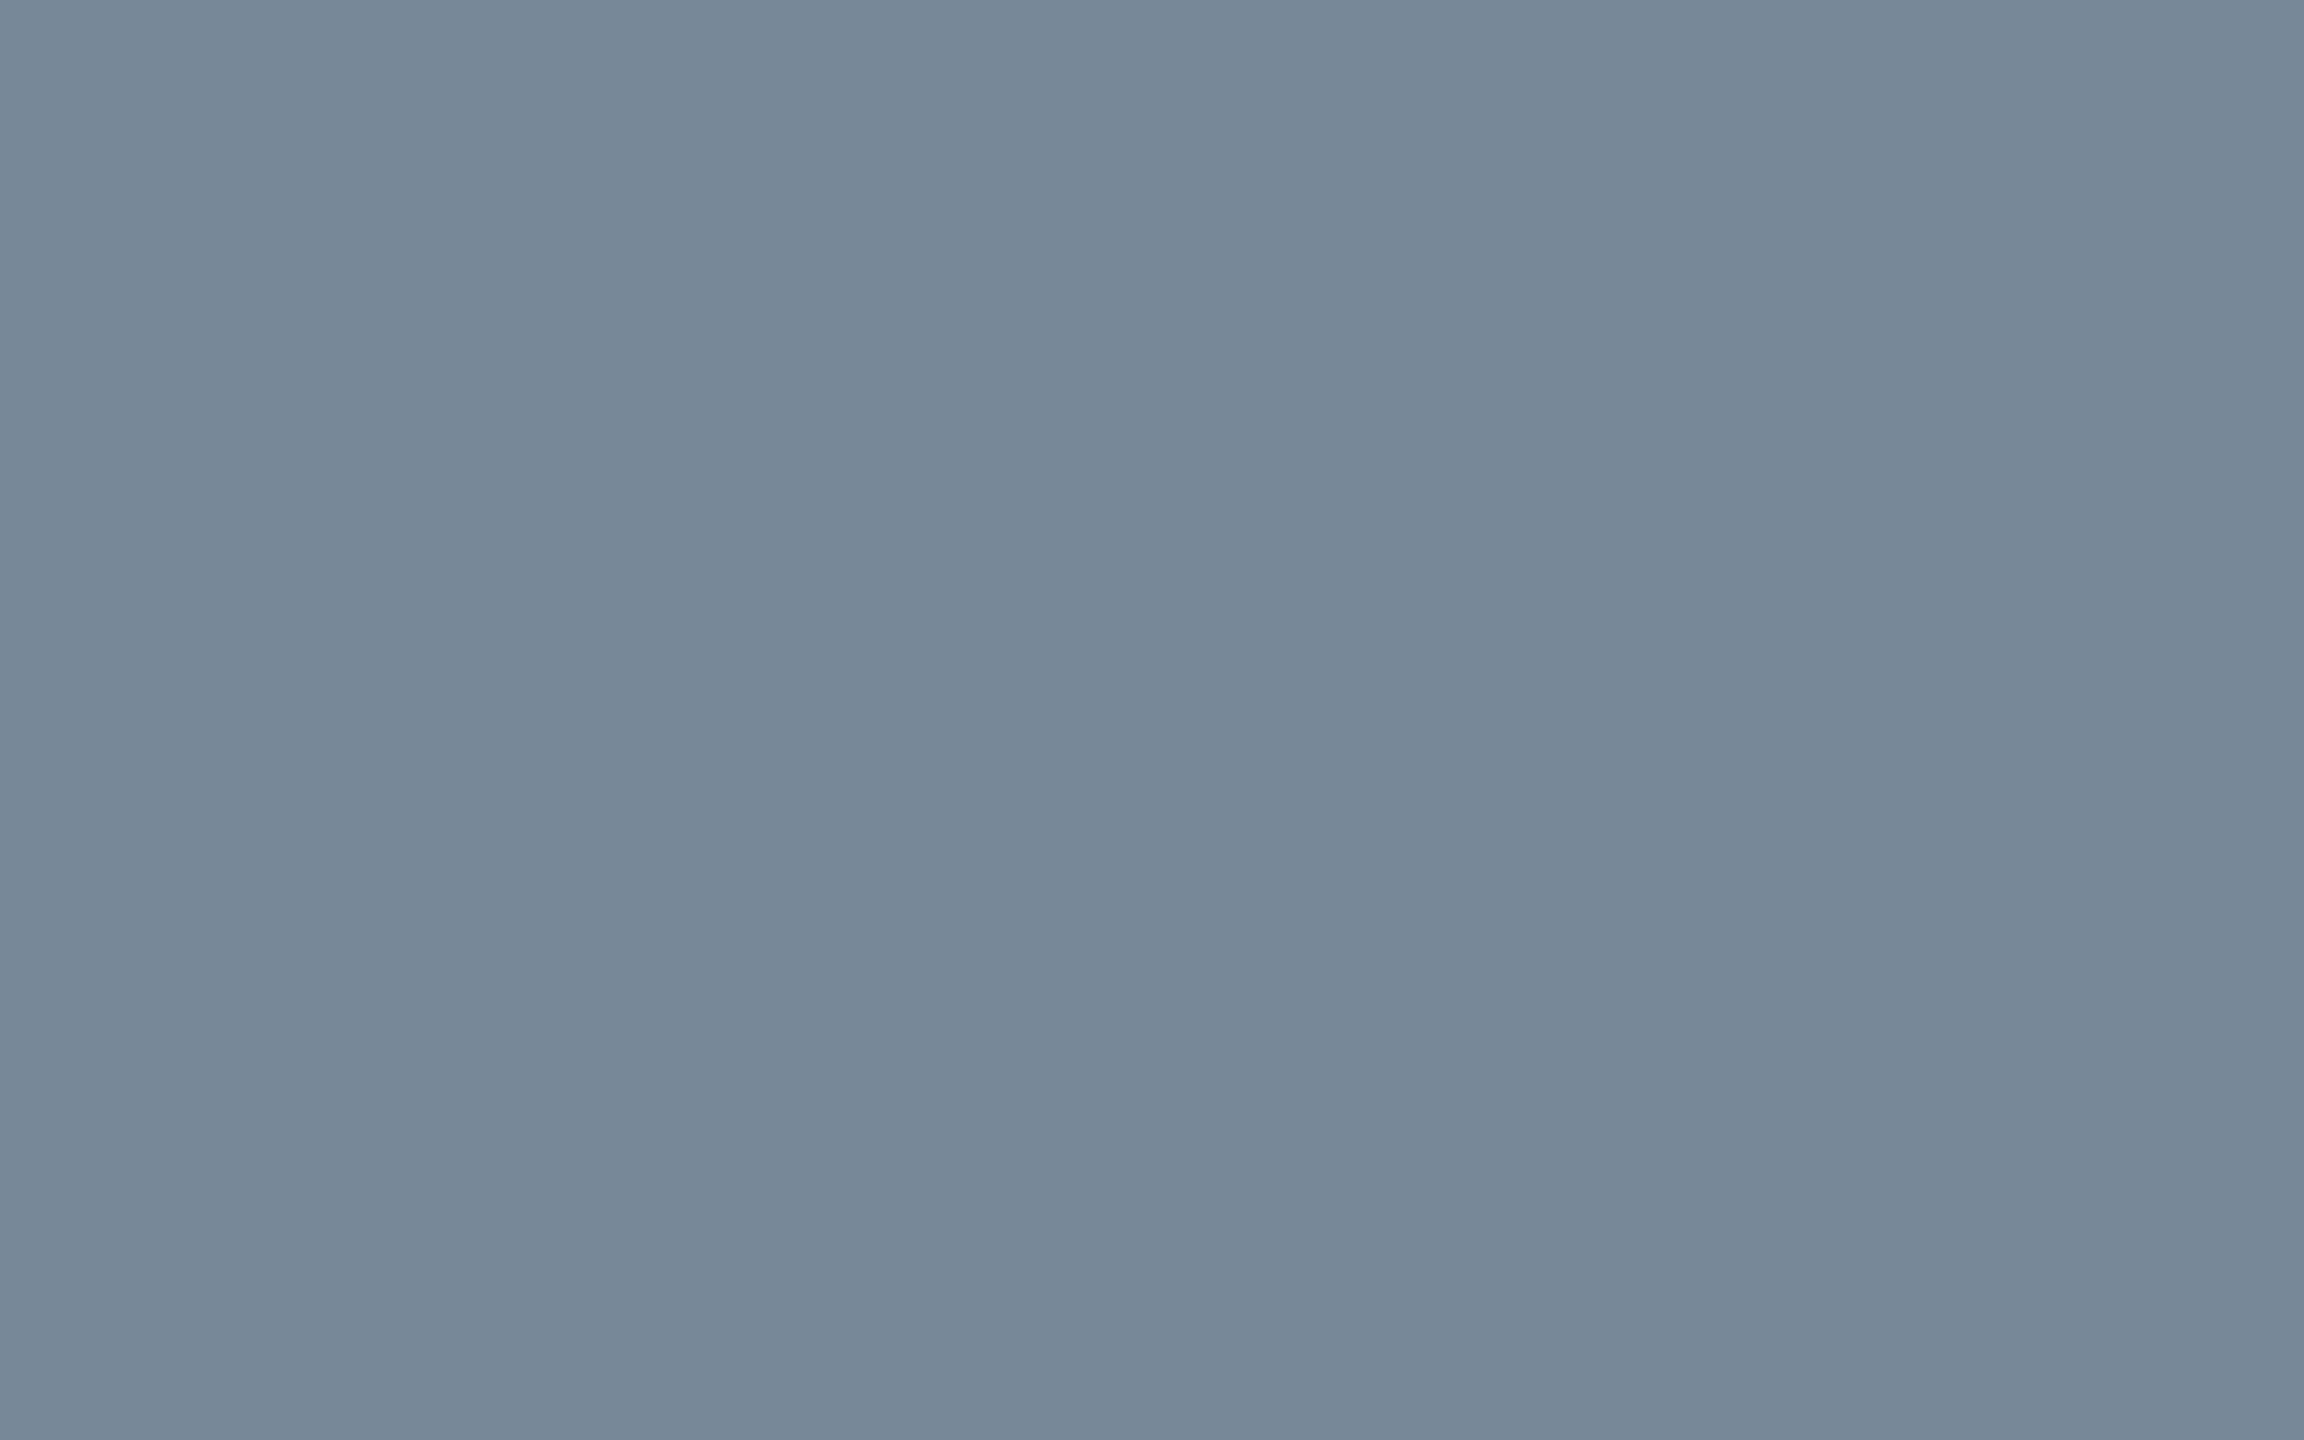 2304x1440 Light Slate Gray Solid Color Background